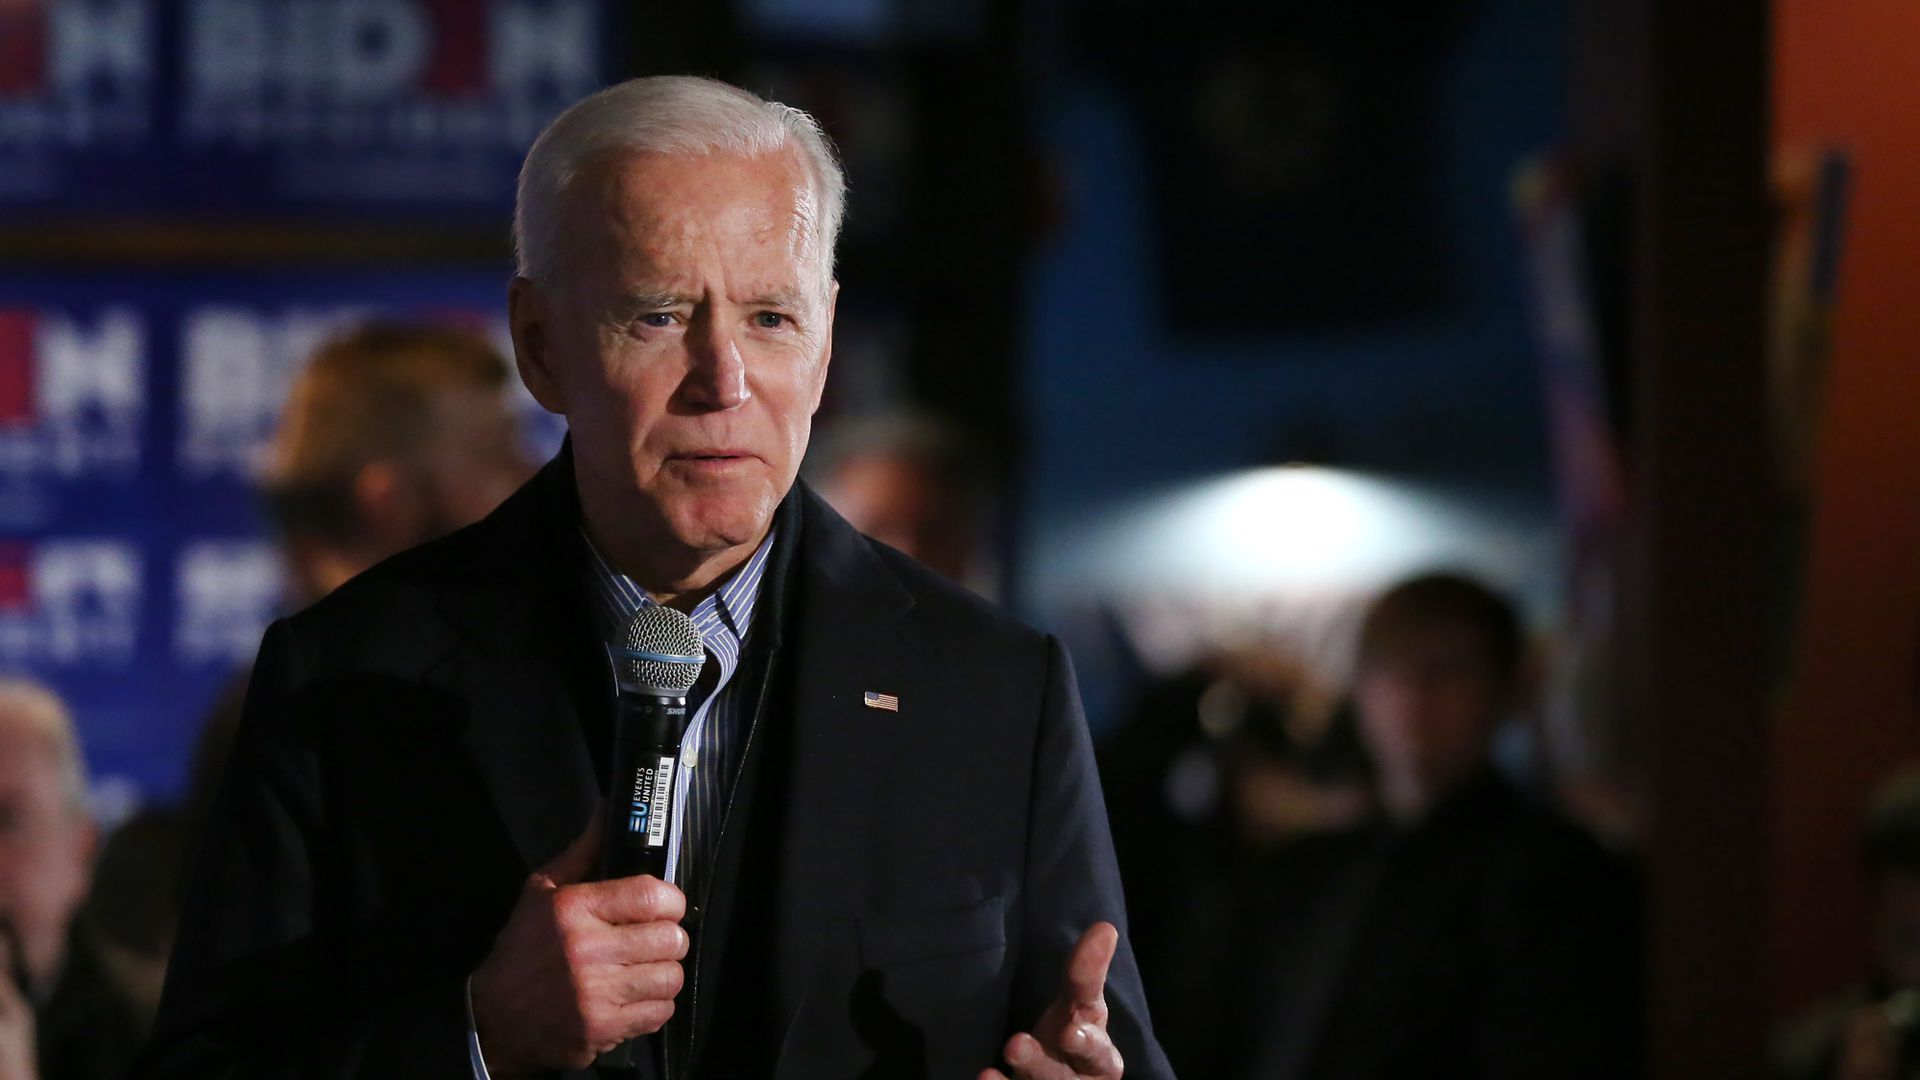 2020 election polls: Joe Biden and Bernie Sanders battle for the first primary votes